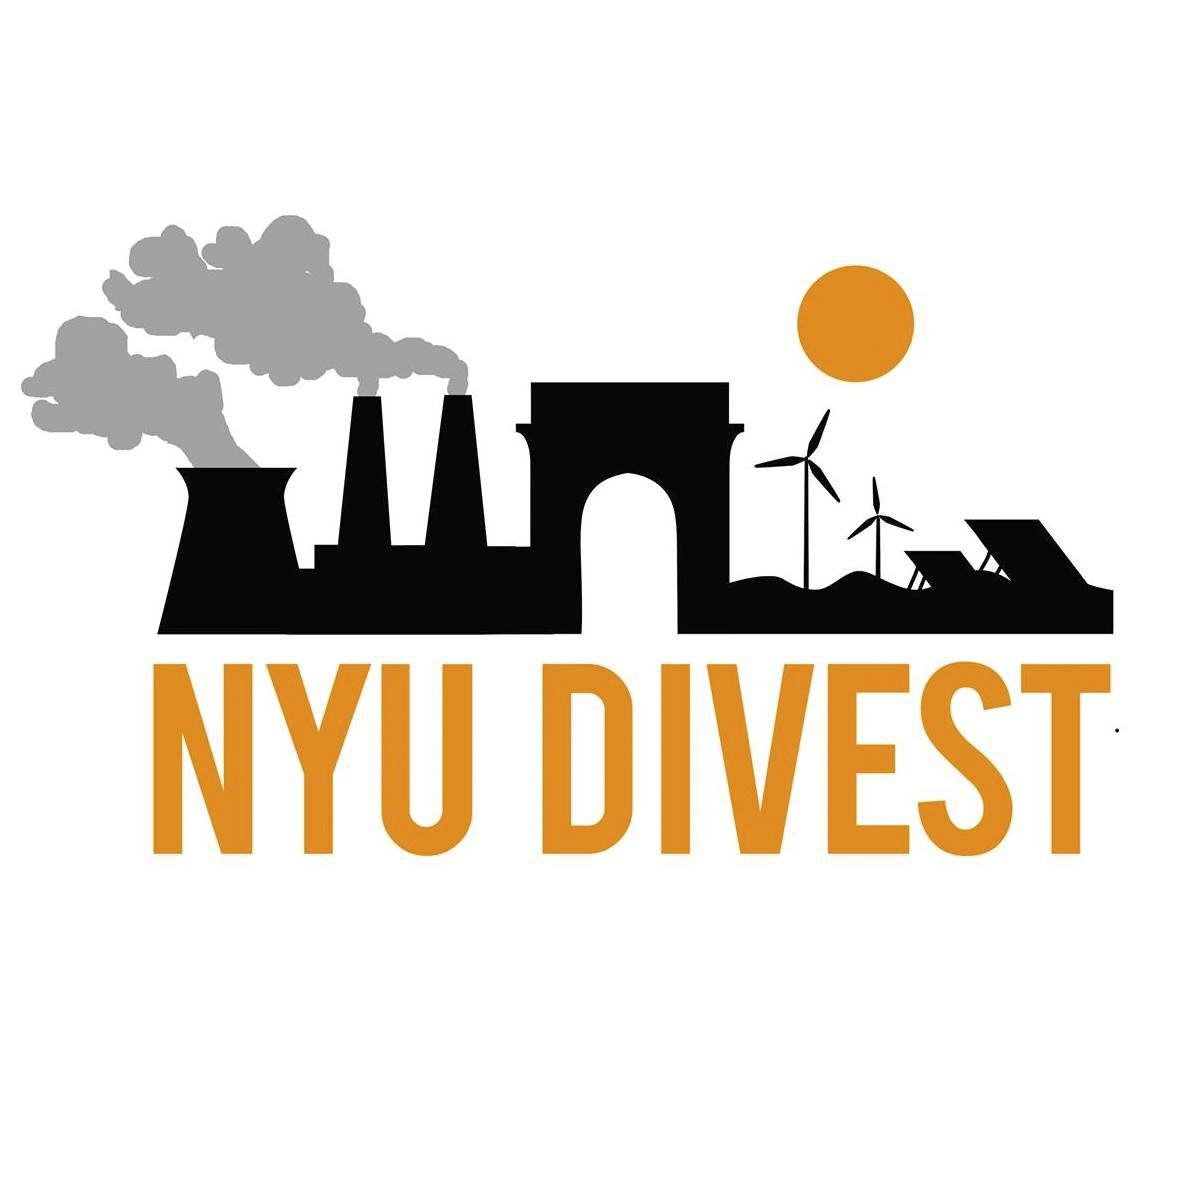 WSN outlines the timeline of NYU Divest, an activist group advocating for divesting from fossil-fuel investments to lower carbon footprints, from September 2016 to April 2017.